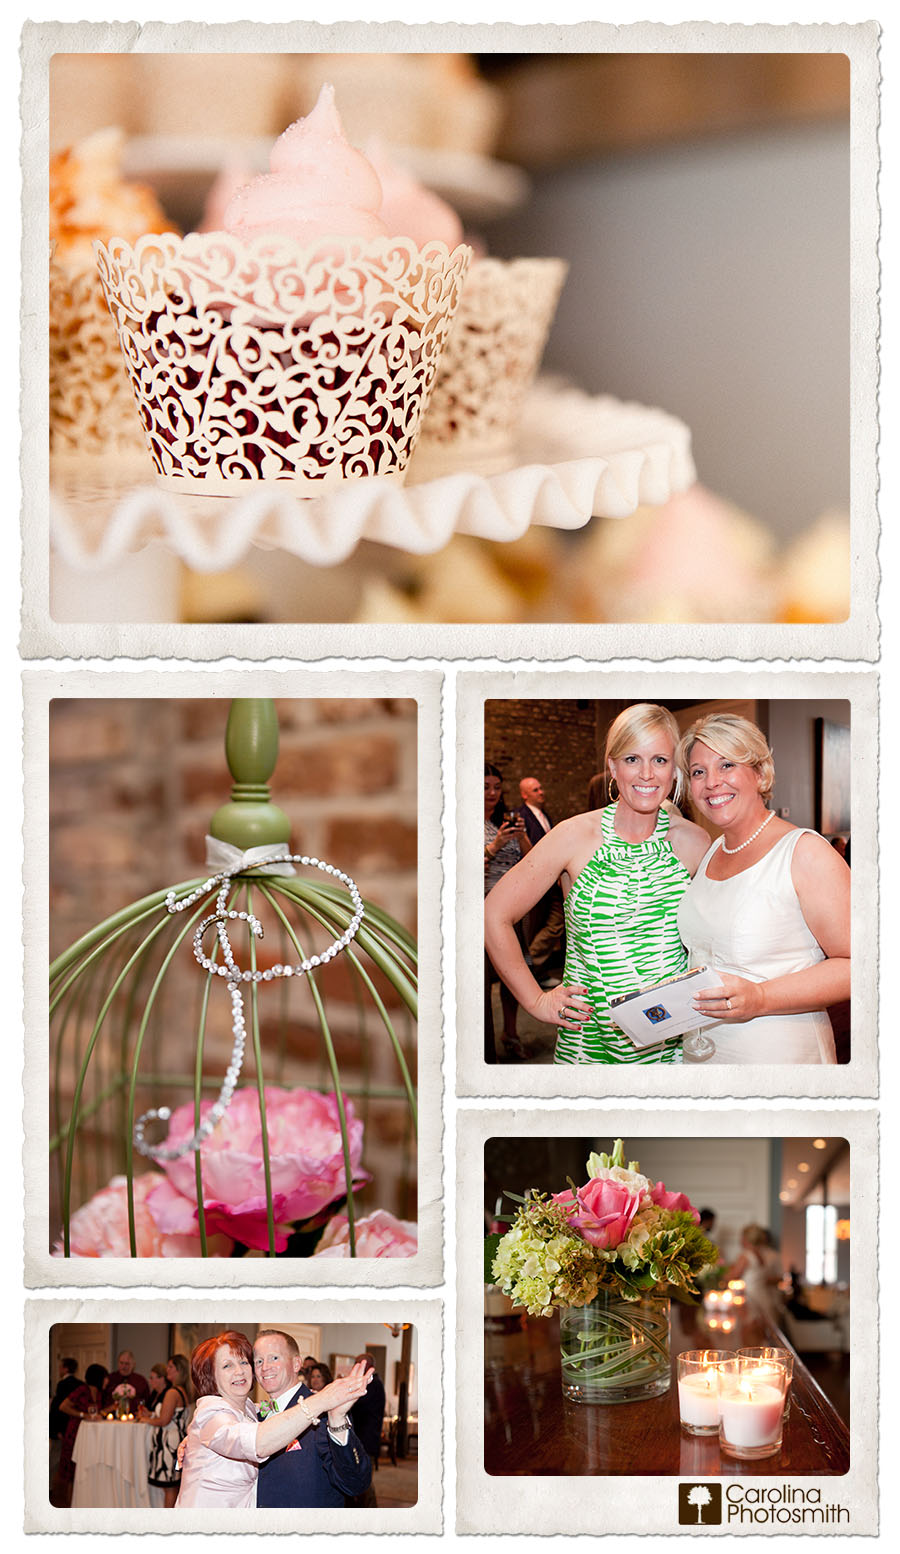 Peonies and cupcakes at intimate McCrady's reception in historic Charleston